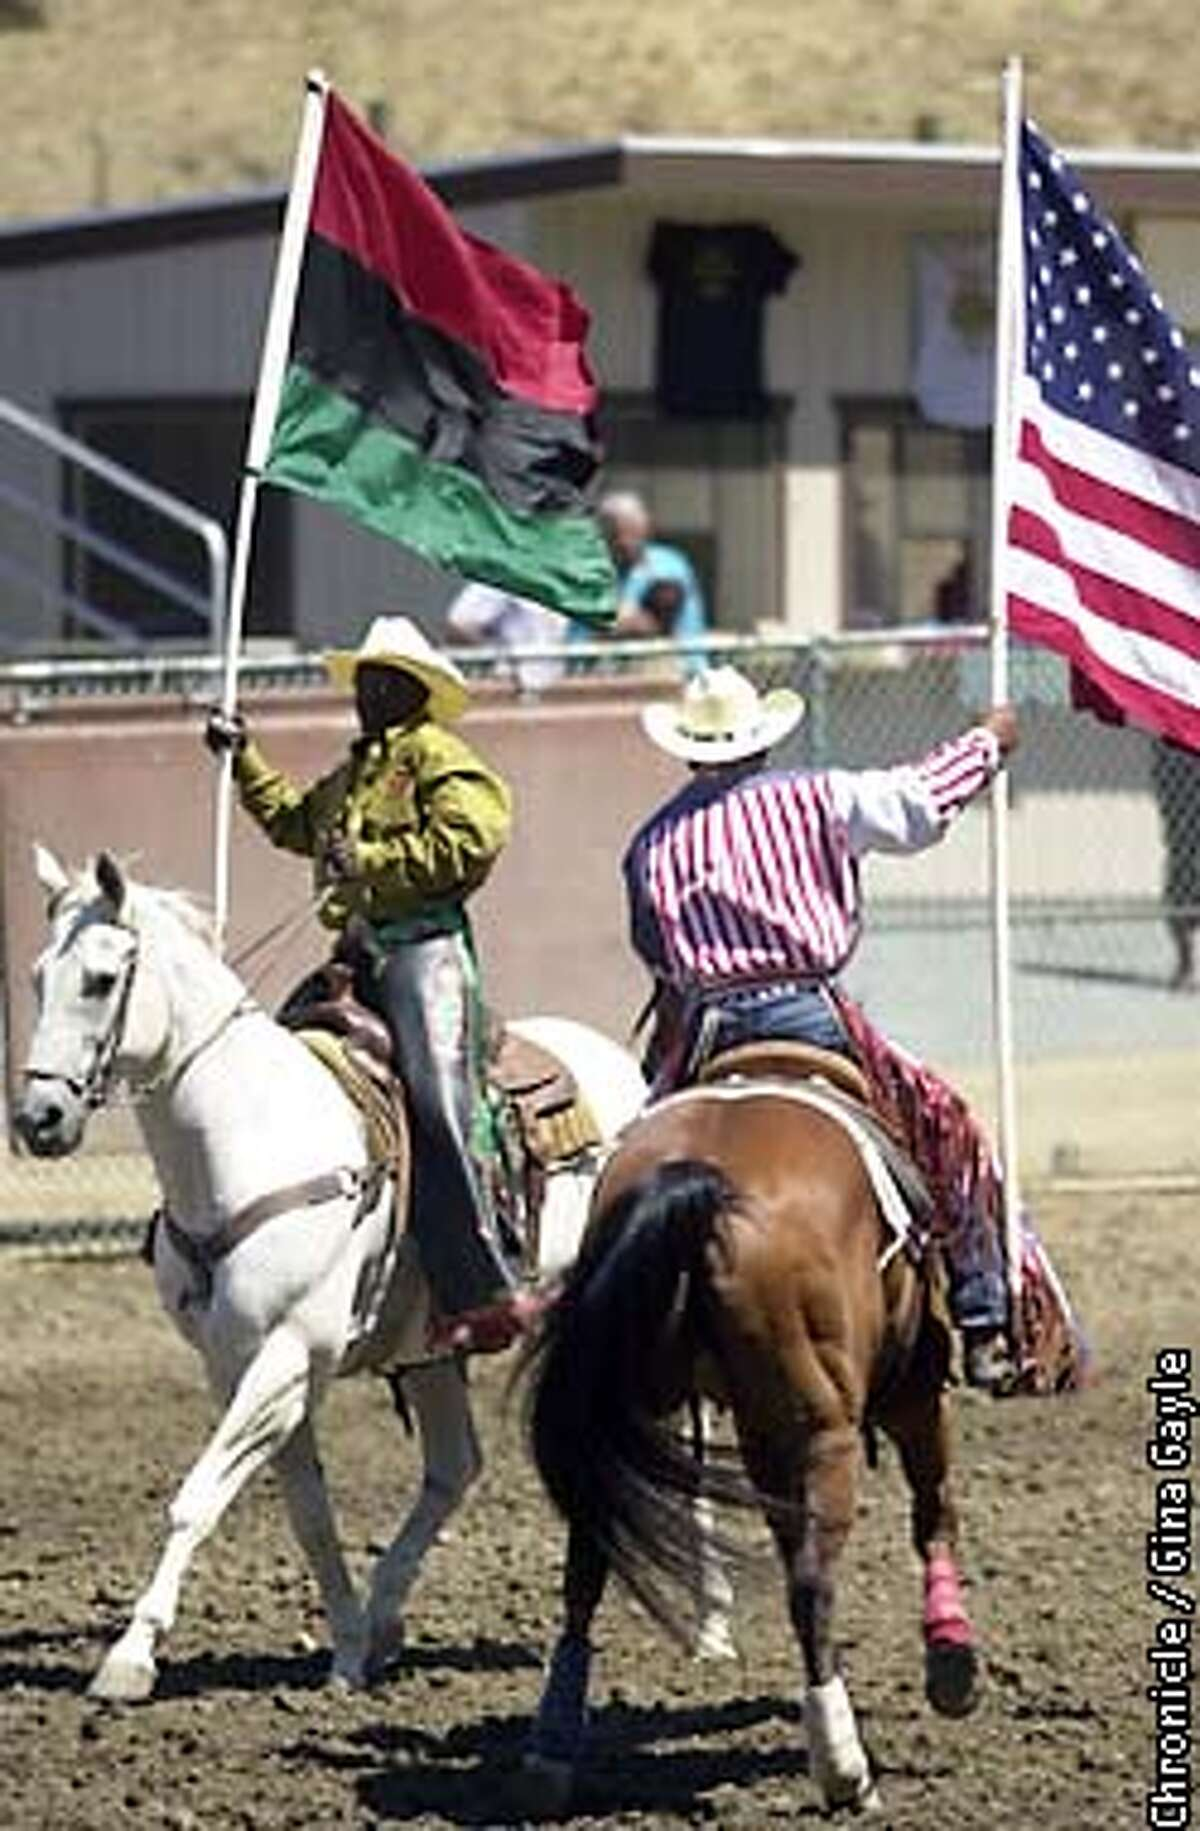 During the Grand Entry of the Bill Pickett Invitational Rodeo, the African flag and the American flag were brought into the stadium. This year the California State Fair has chosen to eliminate the Black rodeo and replace it with a multiculteral rodoe which has caused controversy. Photo by Gina Gayle/The SF Chronicle.